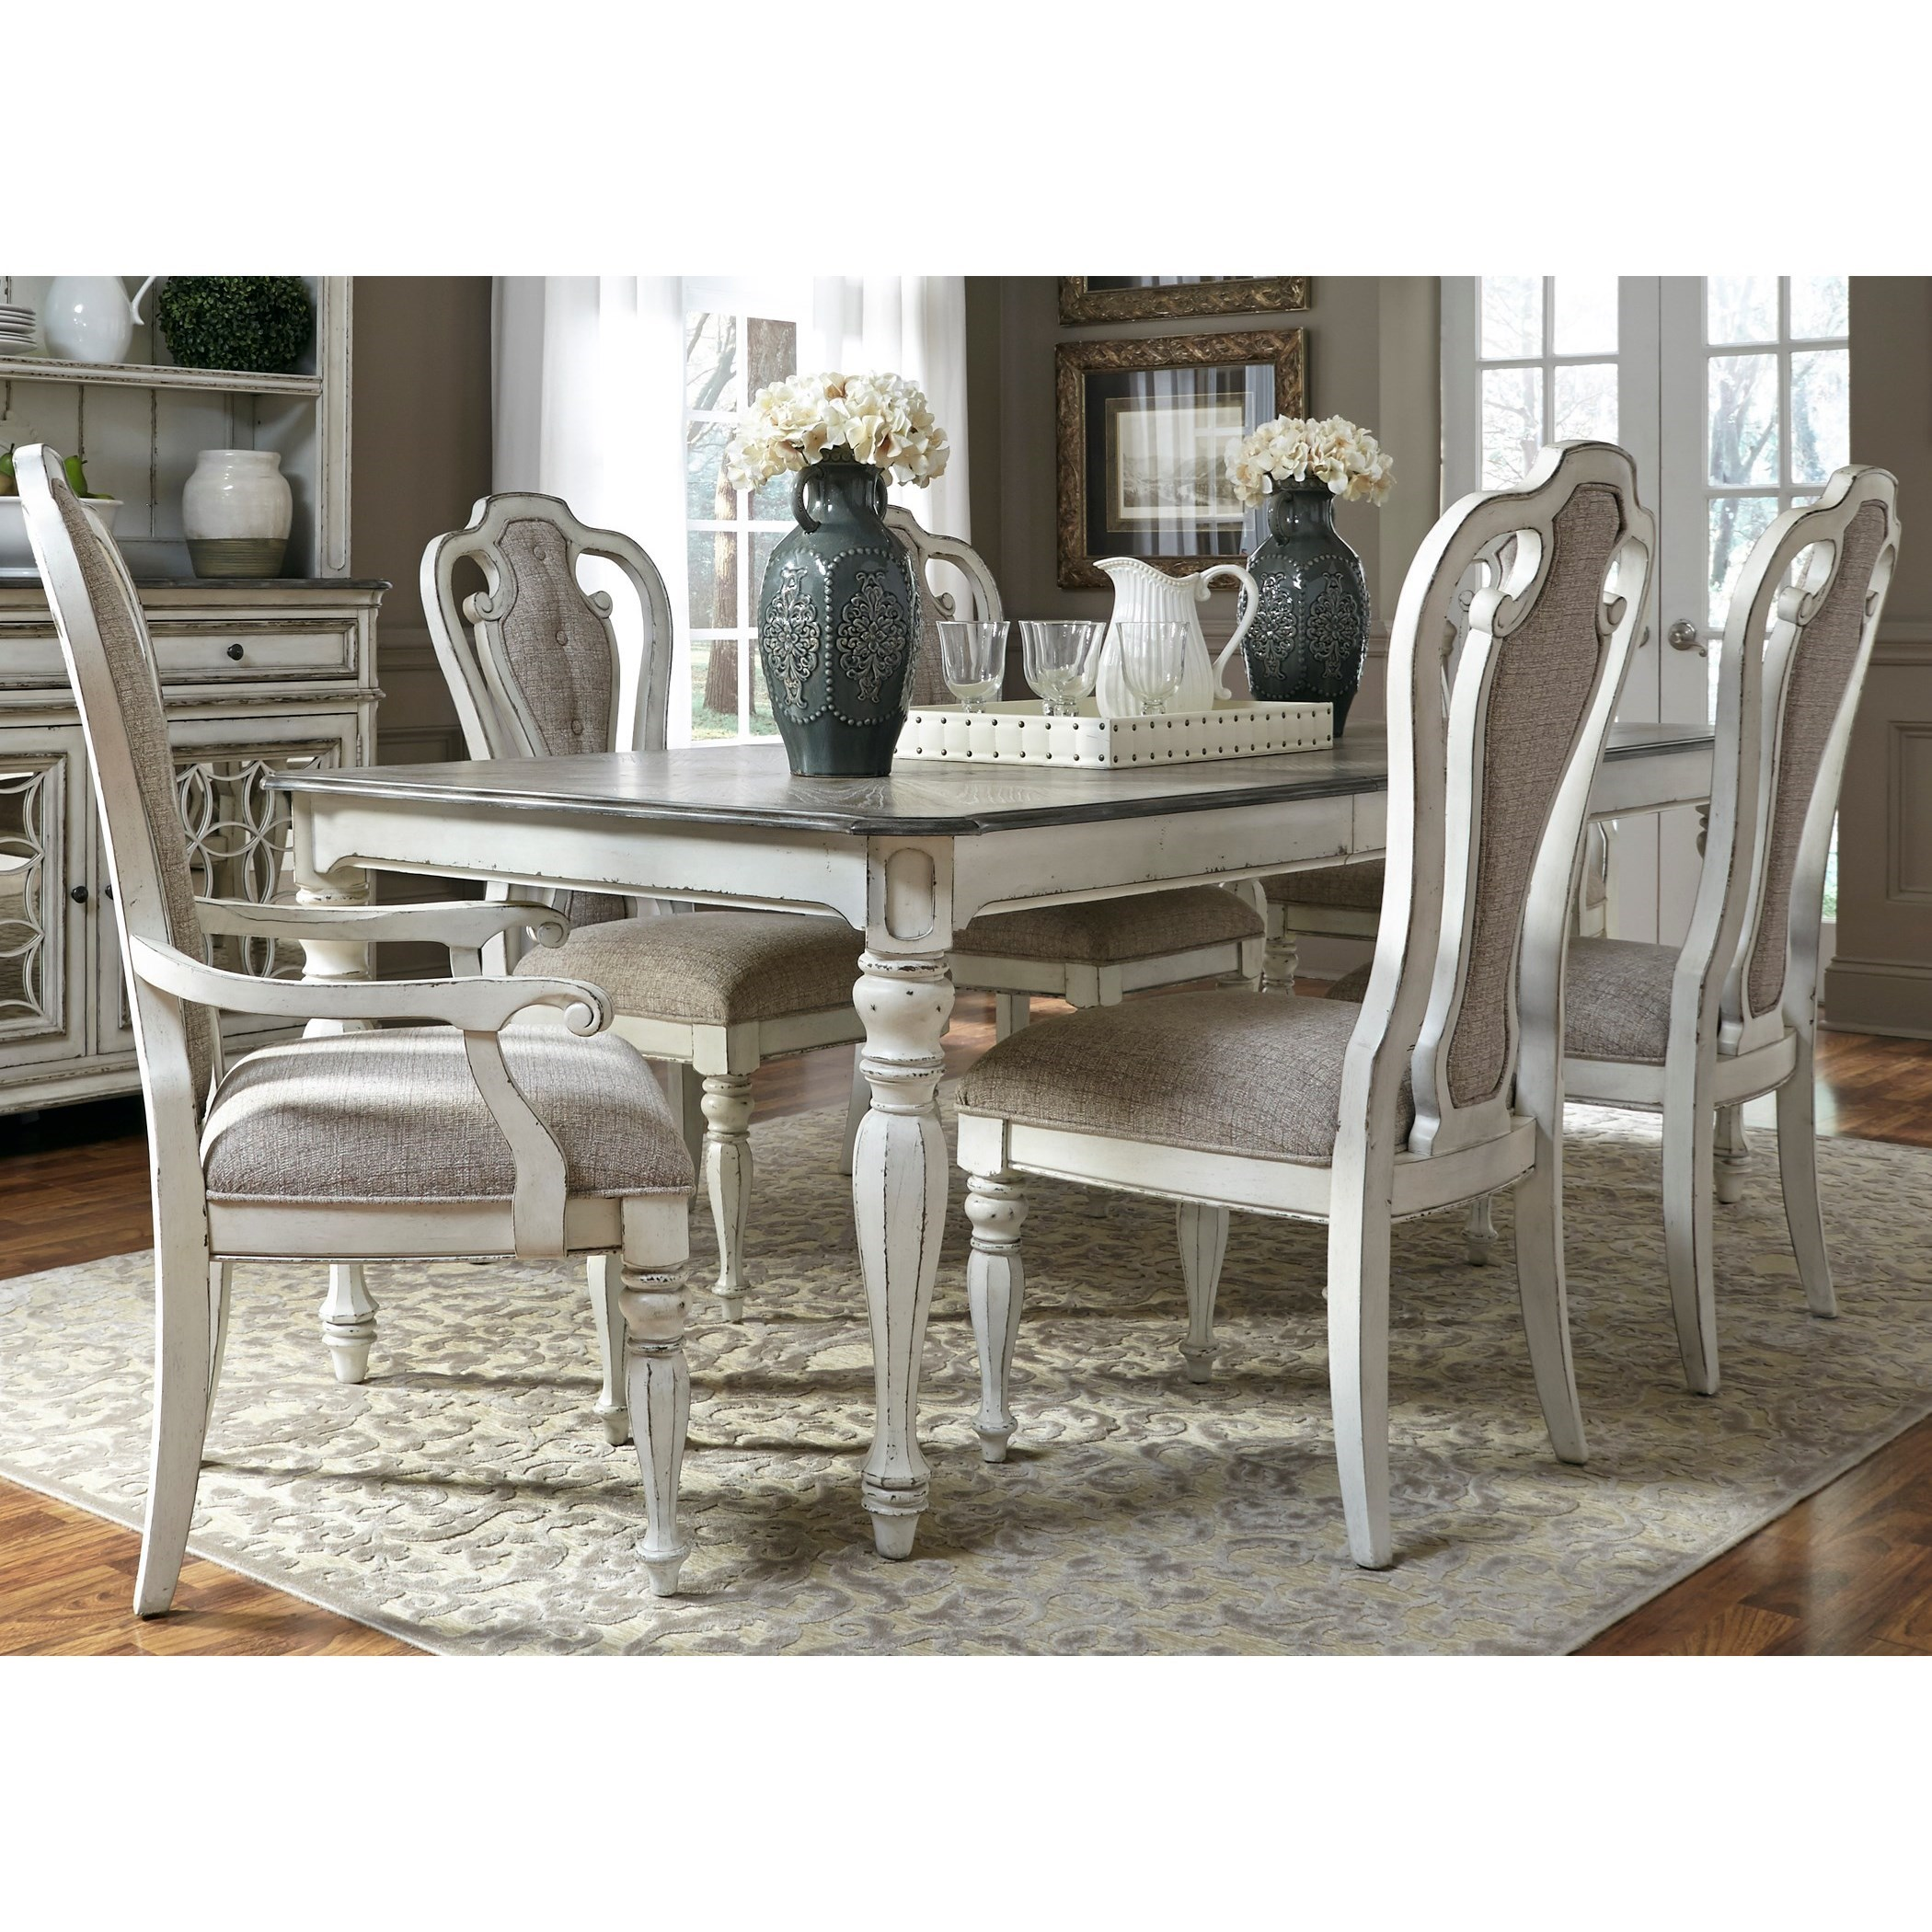 Magnolia Manor Dining 7 Piece Rectangular Table Set With Leaf By Liberty  Furniture